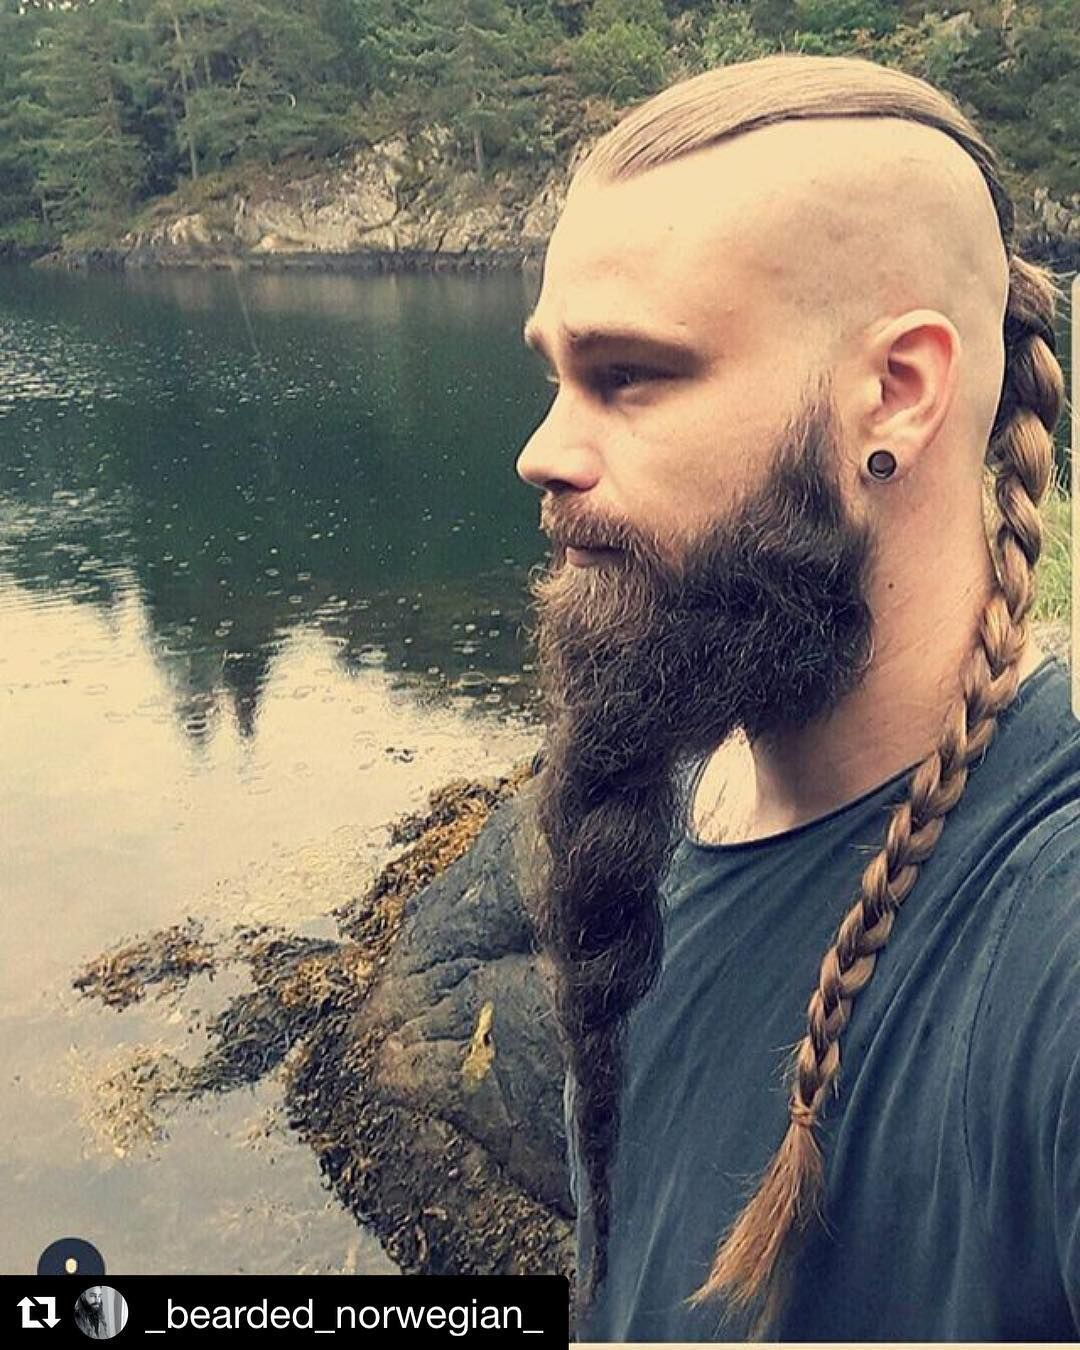 valhalla live the legend bearded guy viking hair hair styles et hair beard styles. Black Bedroom Furniture Sets. Home Design Ideas